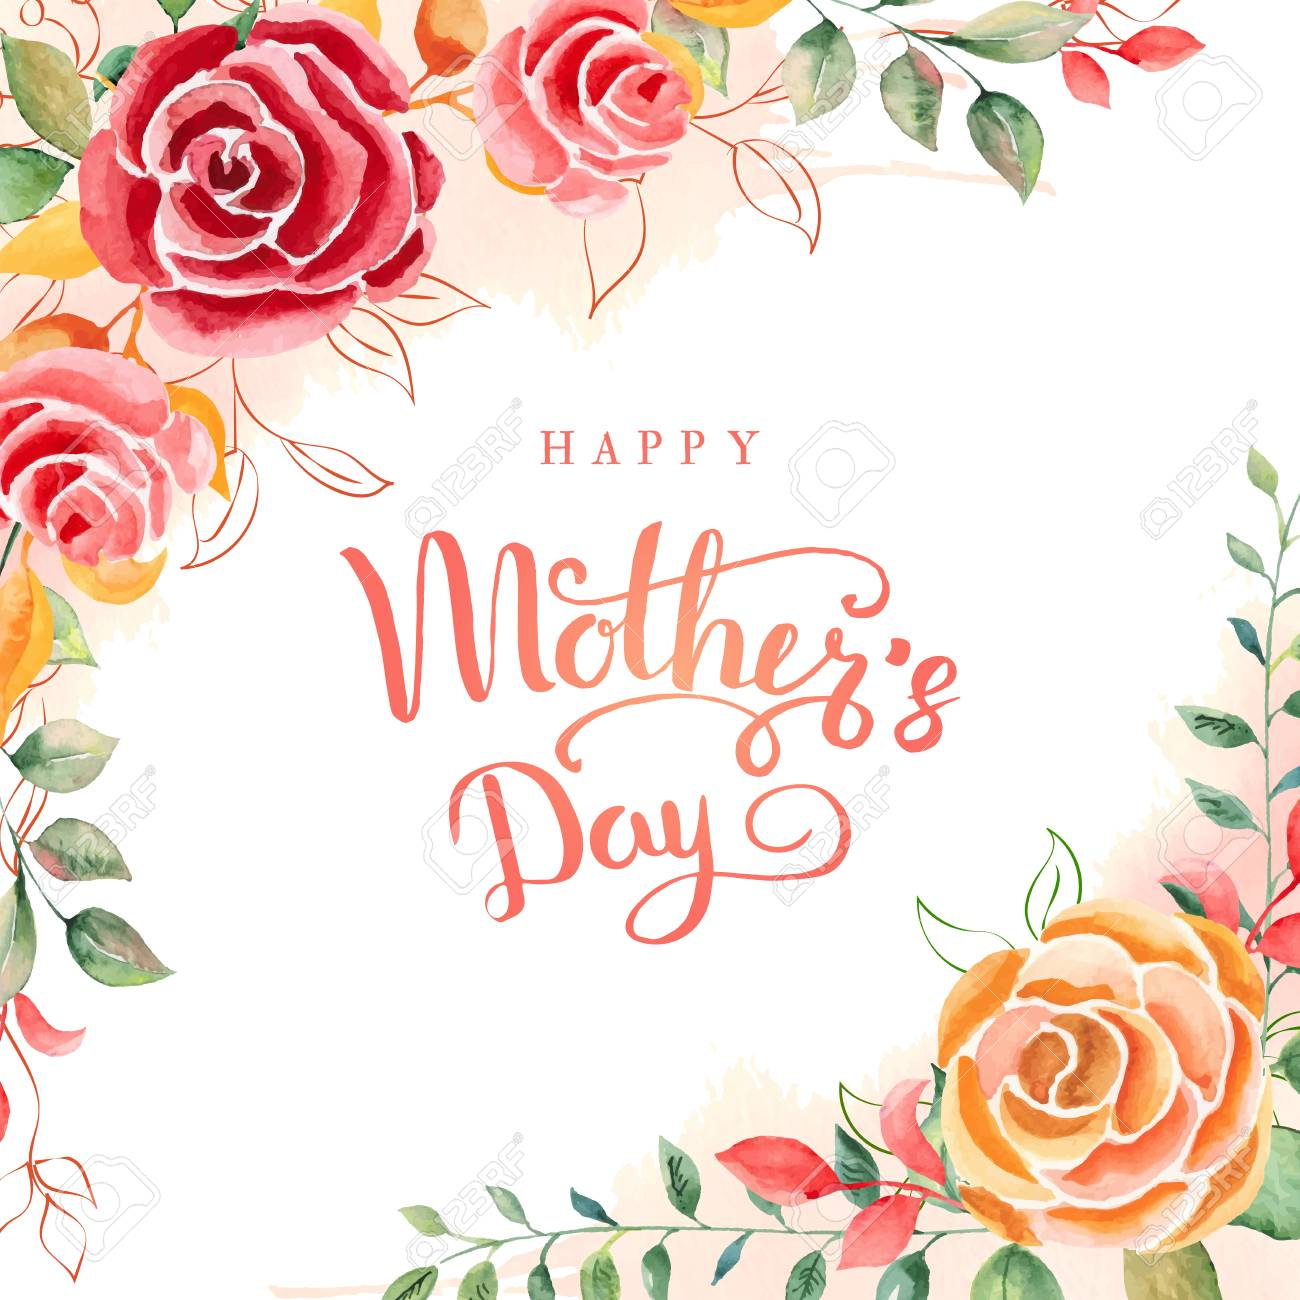 Happy Mothers Day Greeting Card With Mothers Day Floral Background